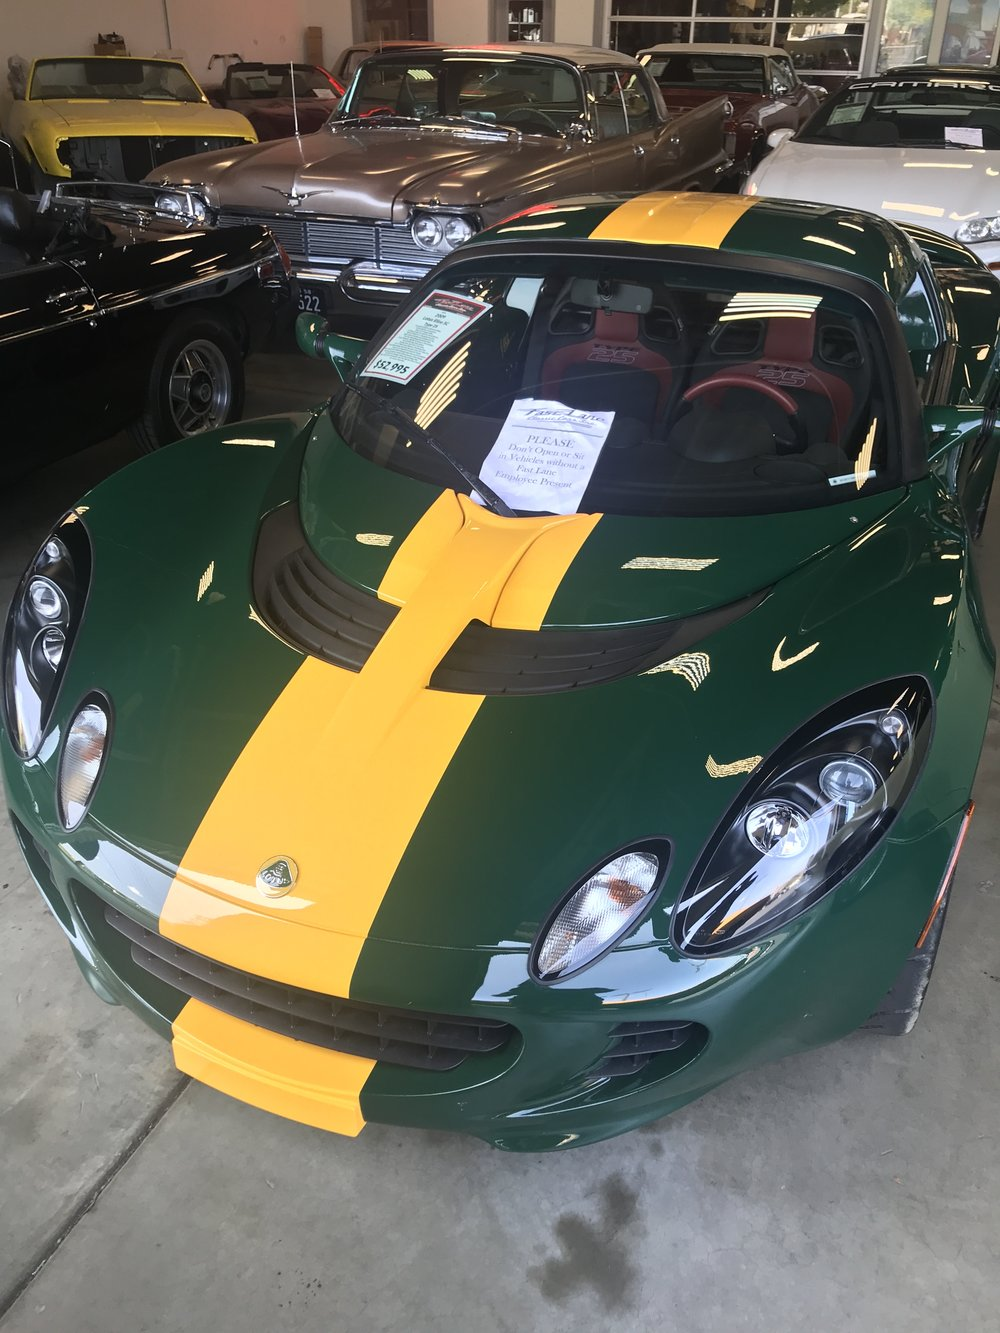 A 2009 Lotus is one of many foreign wonders inside Fast Lane Classic Cars.